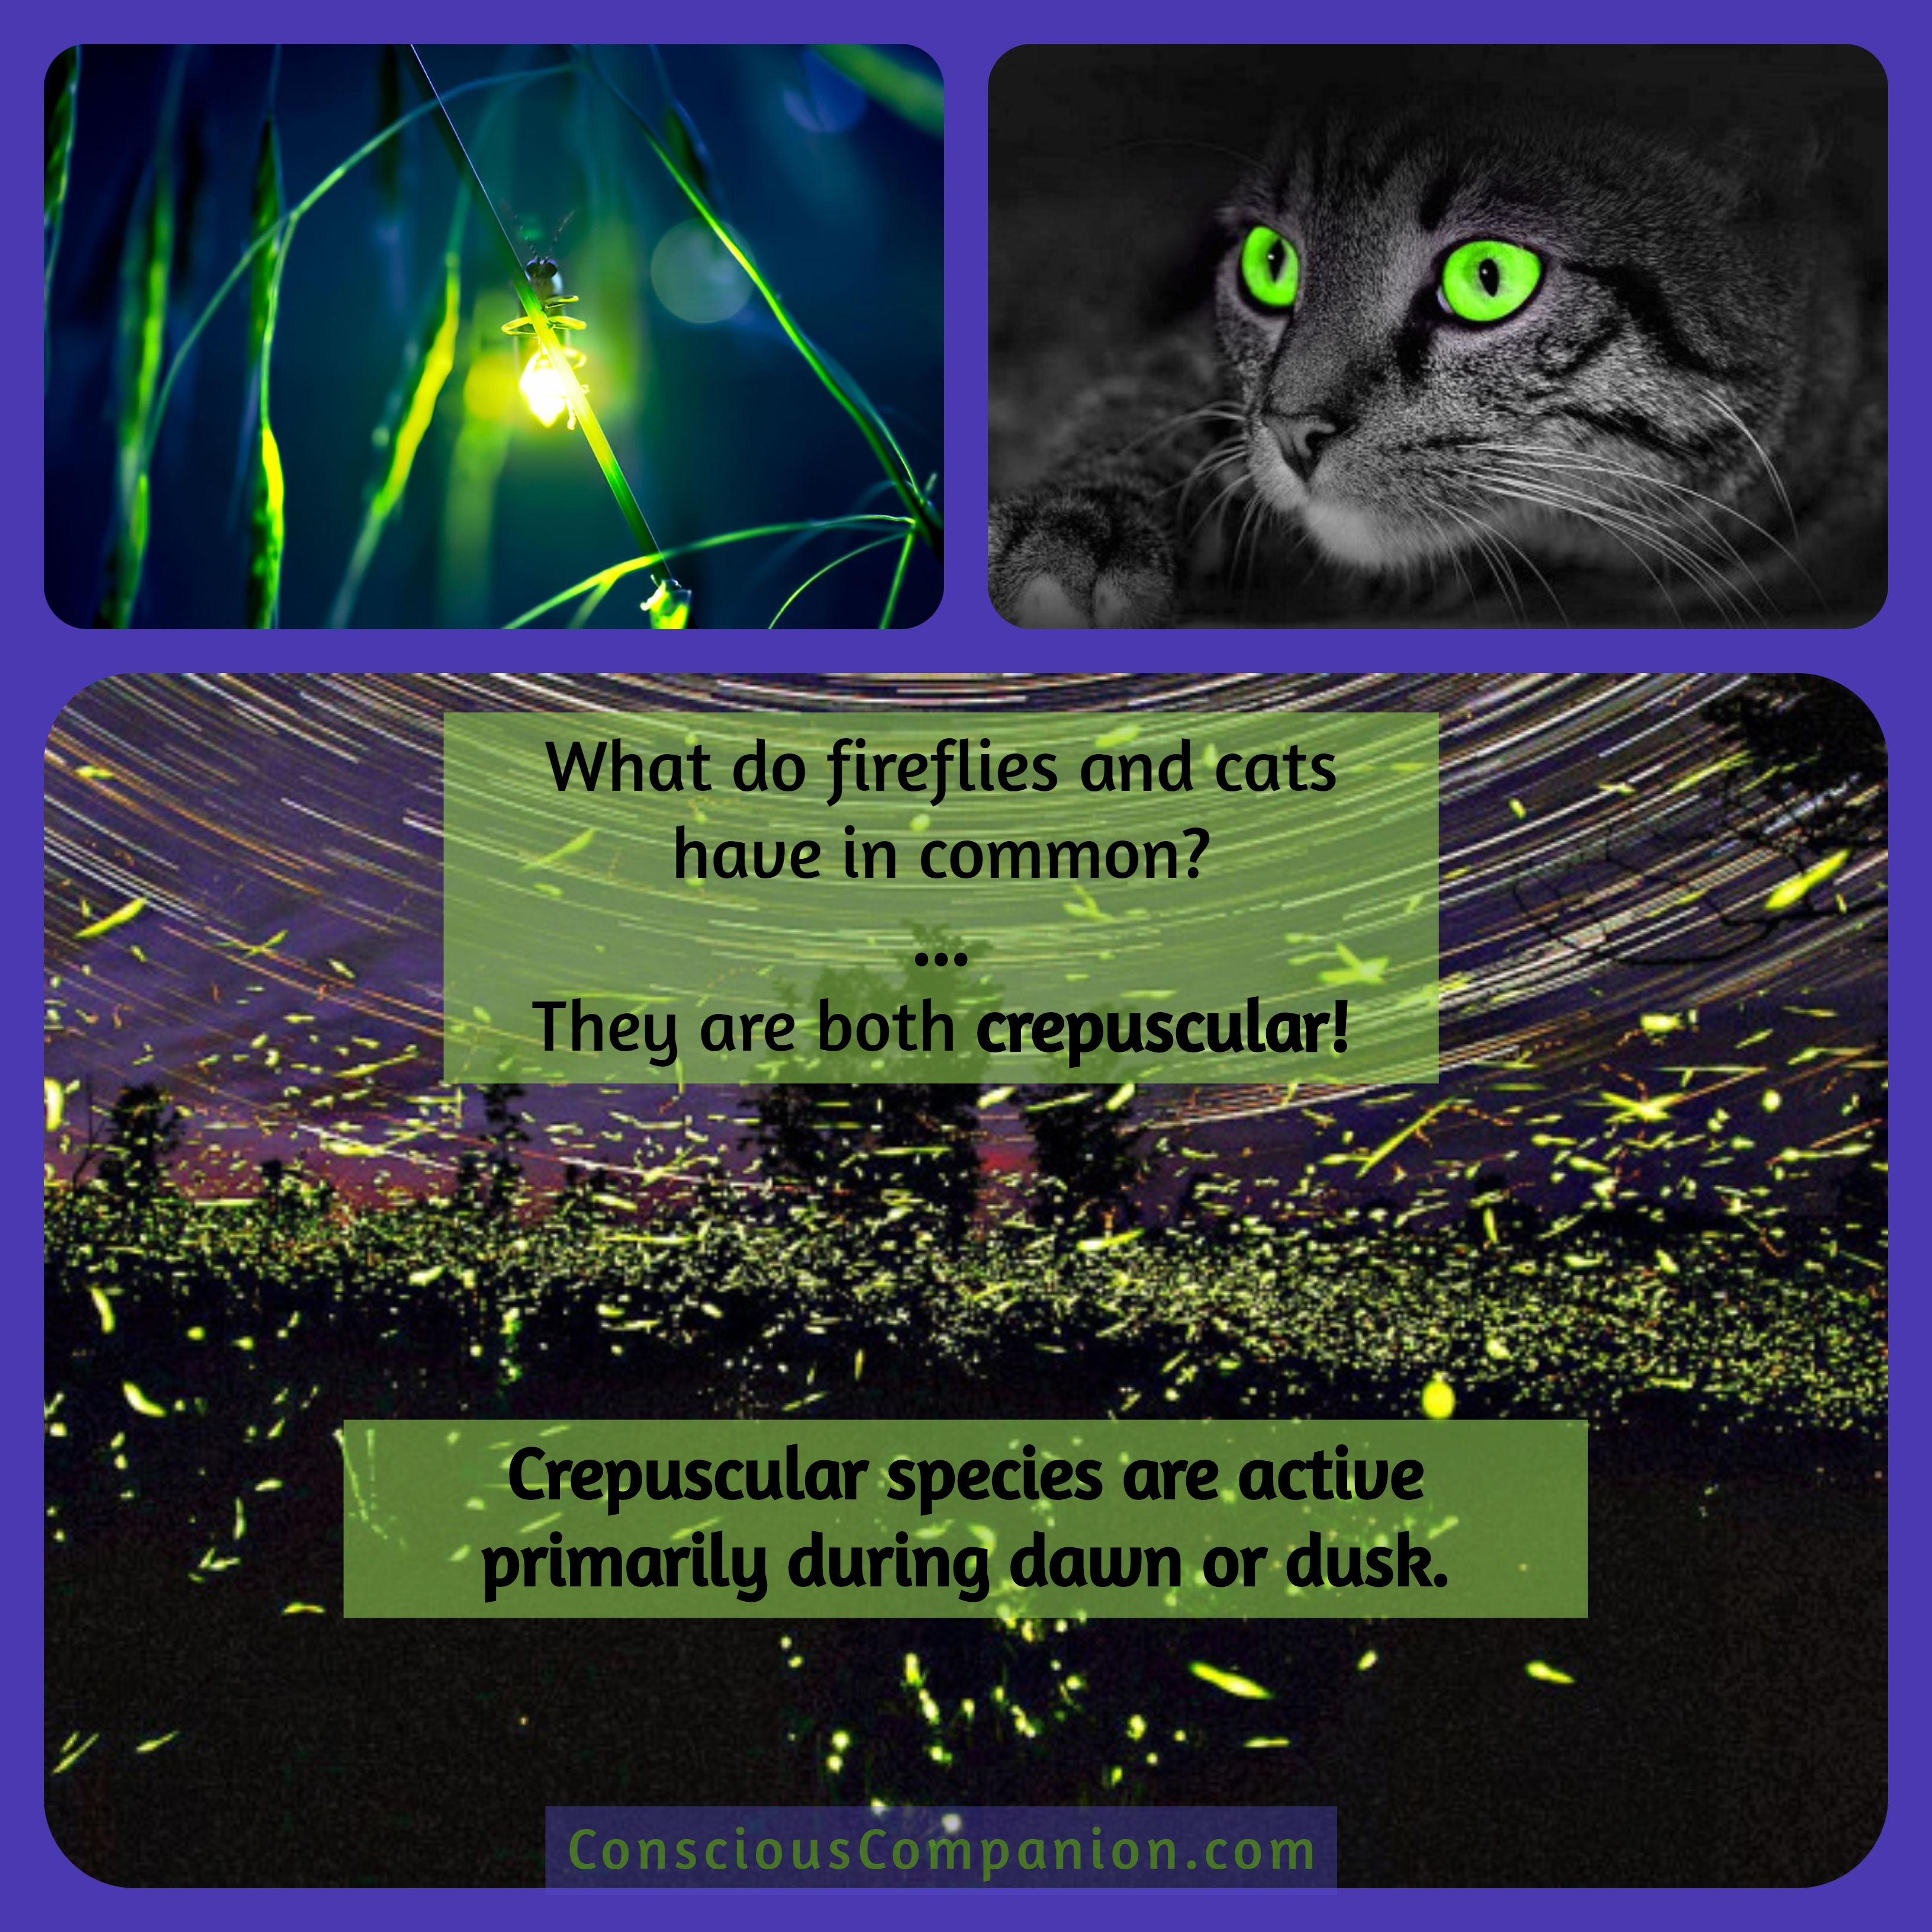 Cats_crepuscular_not nocturnal_dusk dawn animal activity_why does my cat_cat behavior_cat wakes up